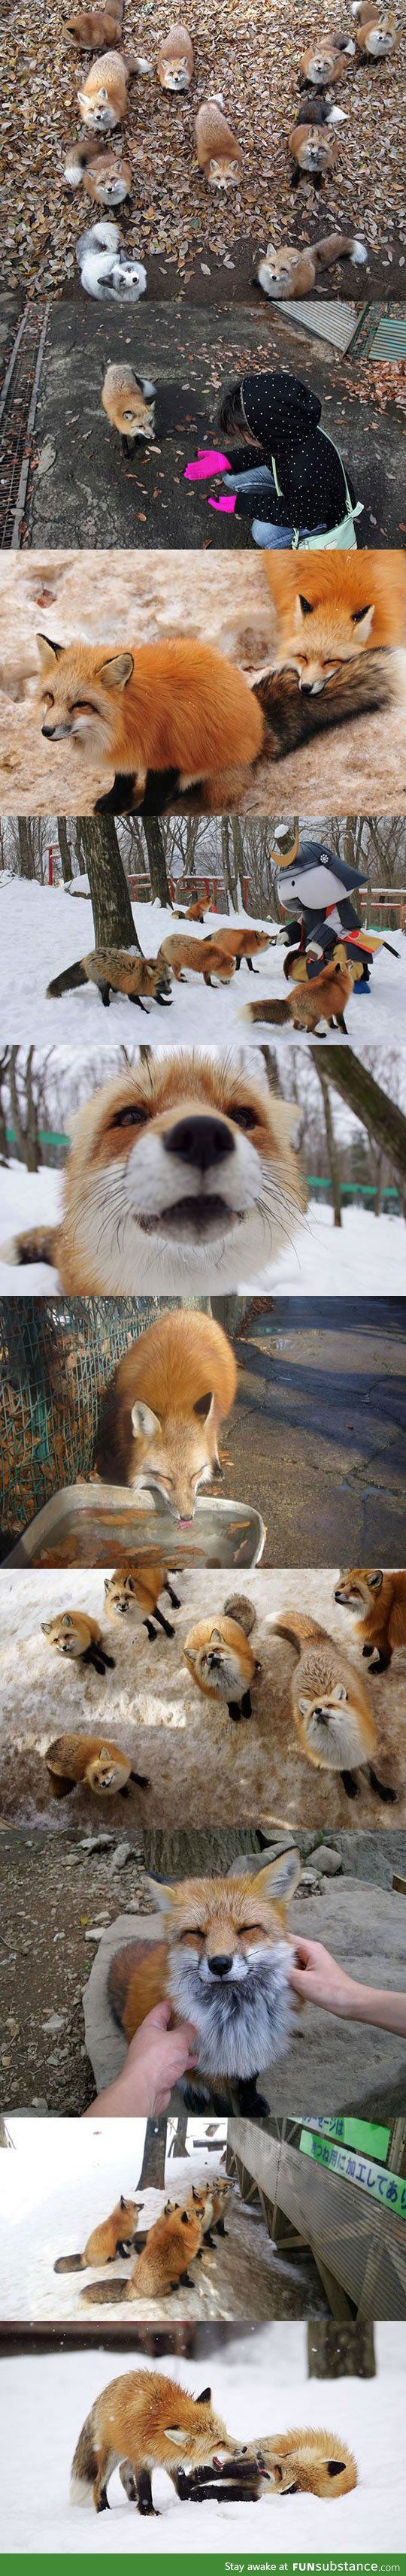 Fox village in japan